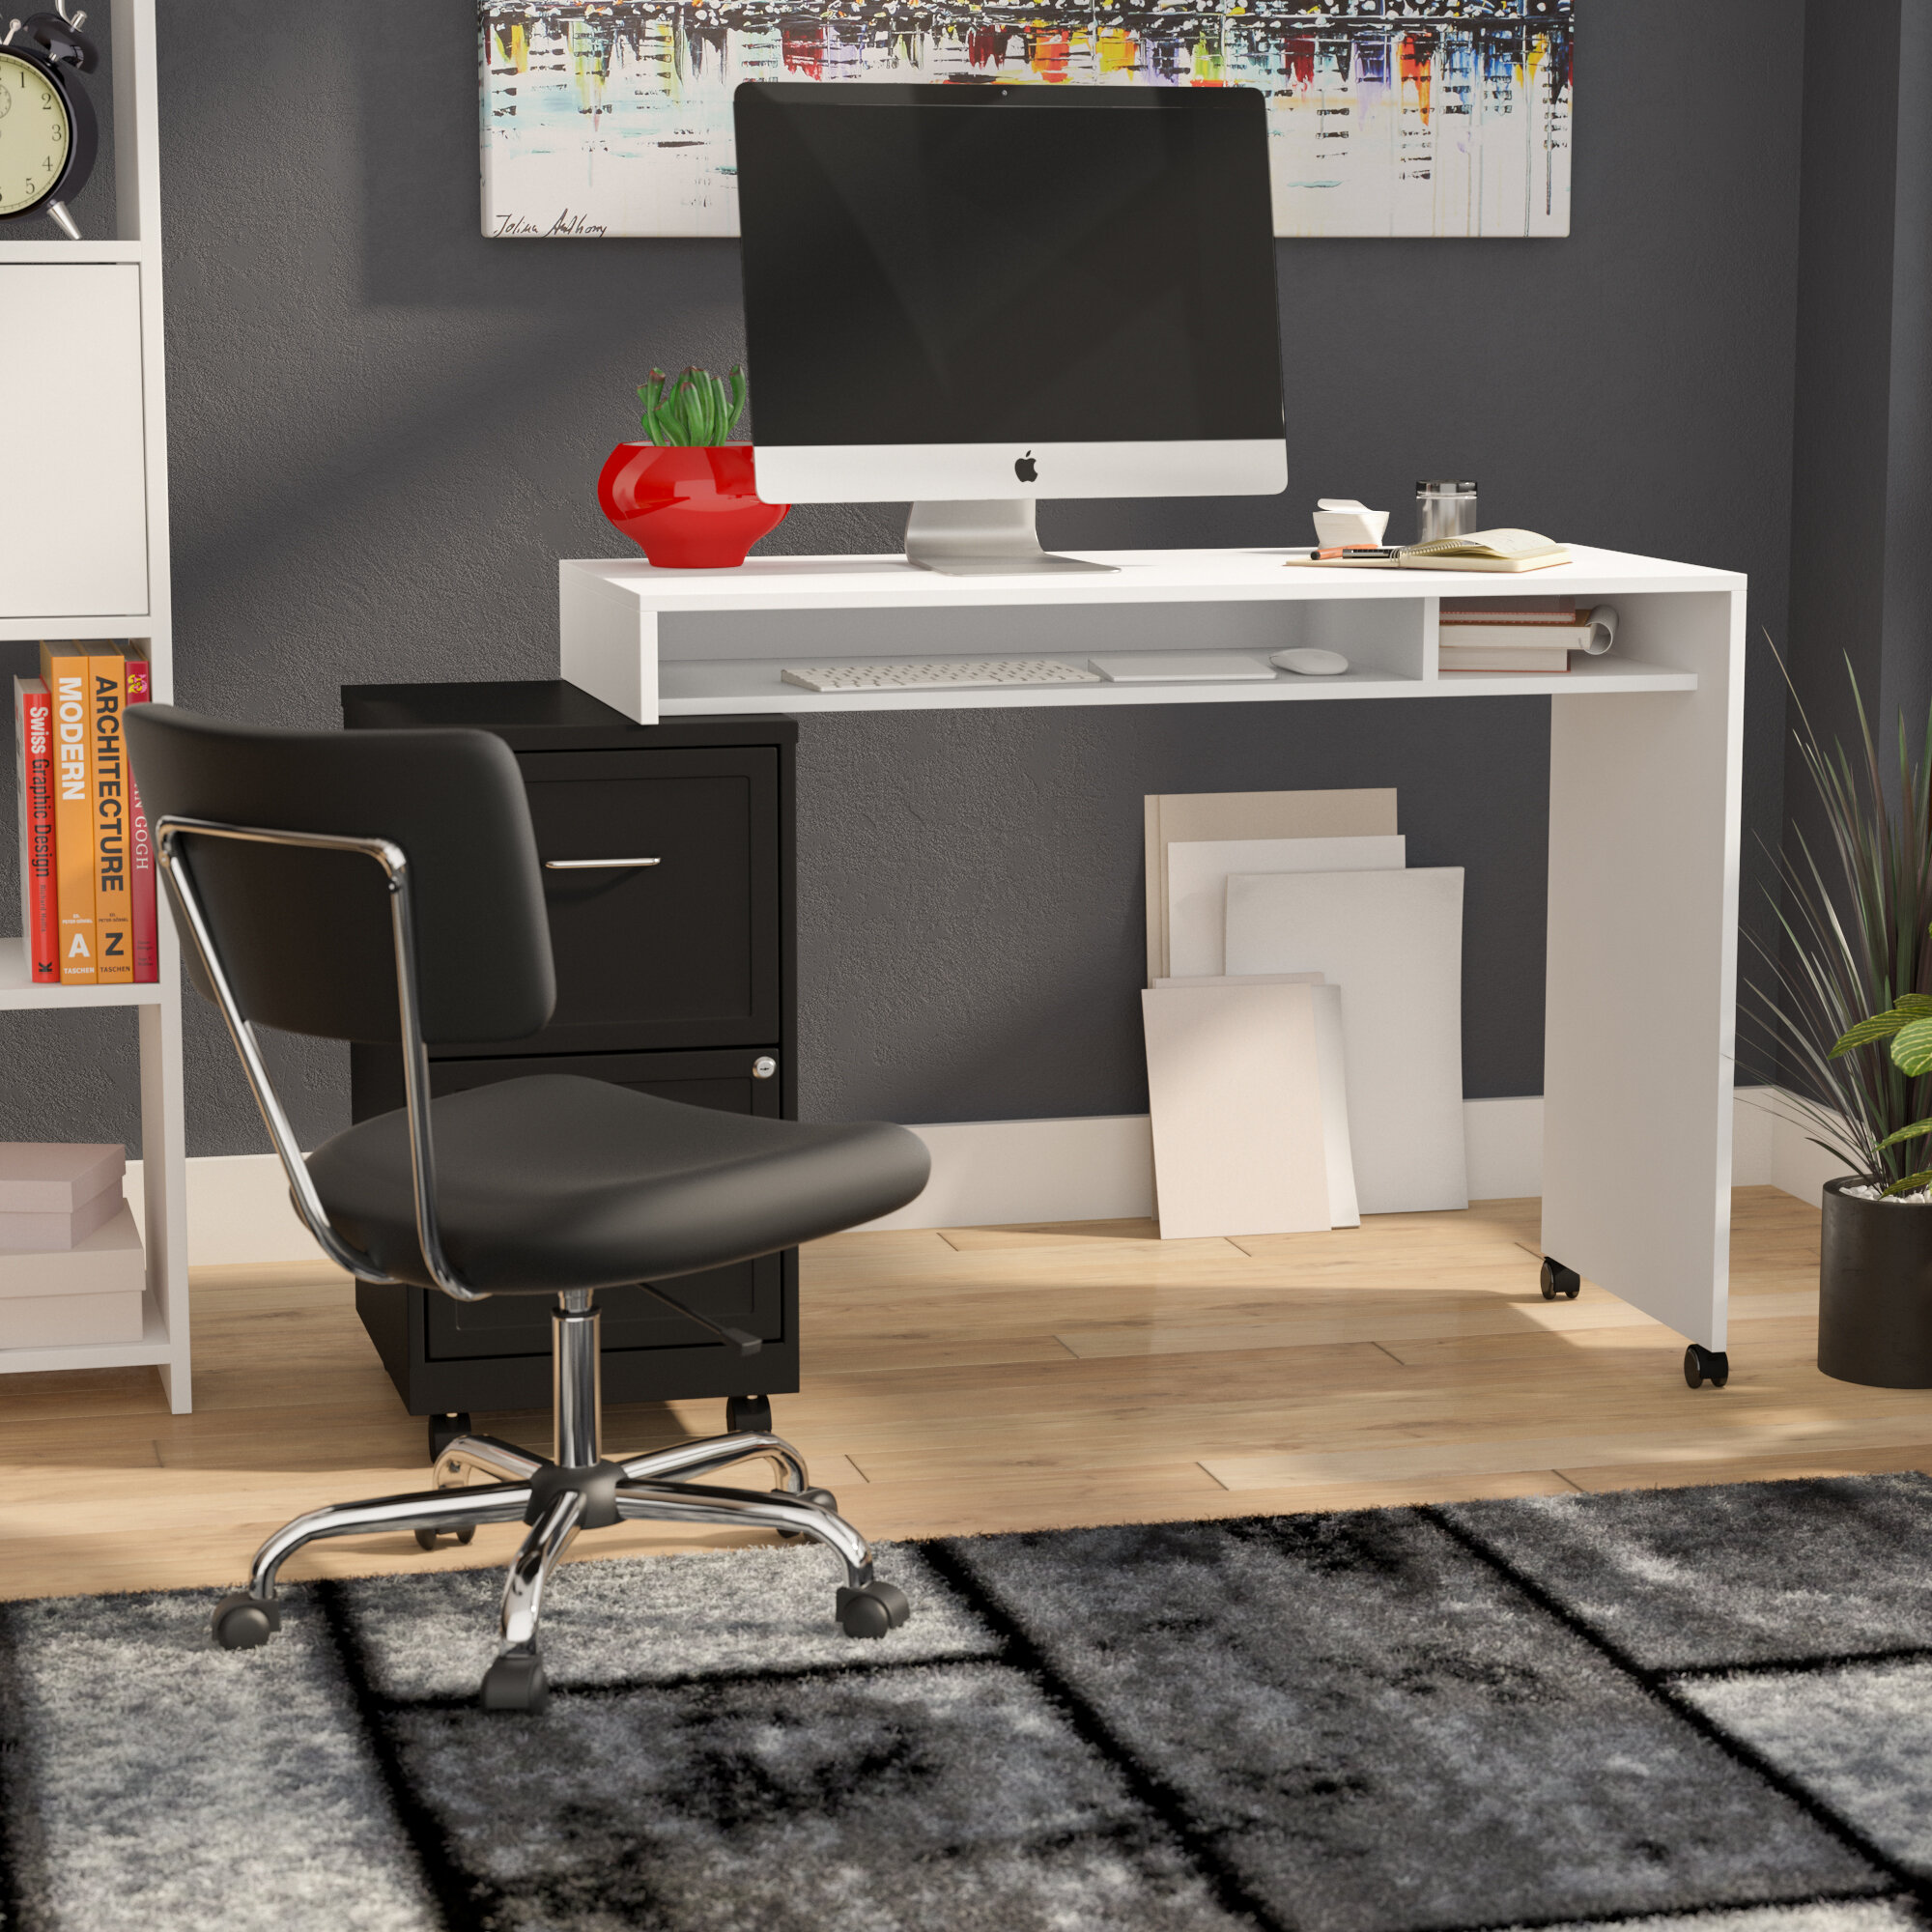 posture office discount desk pain stools near back chairs small of full size ergonomic sale with folding designed me no ergonomically for computer seat arms wheels chair best officeworks reviews buy